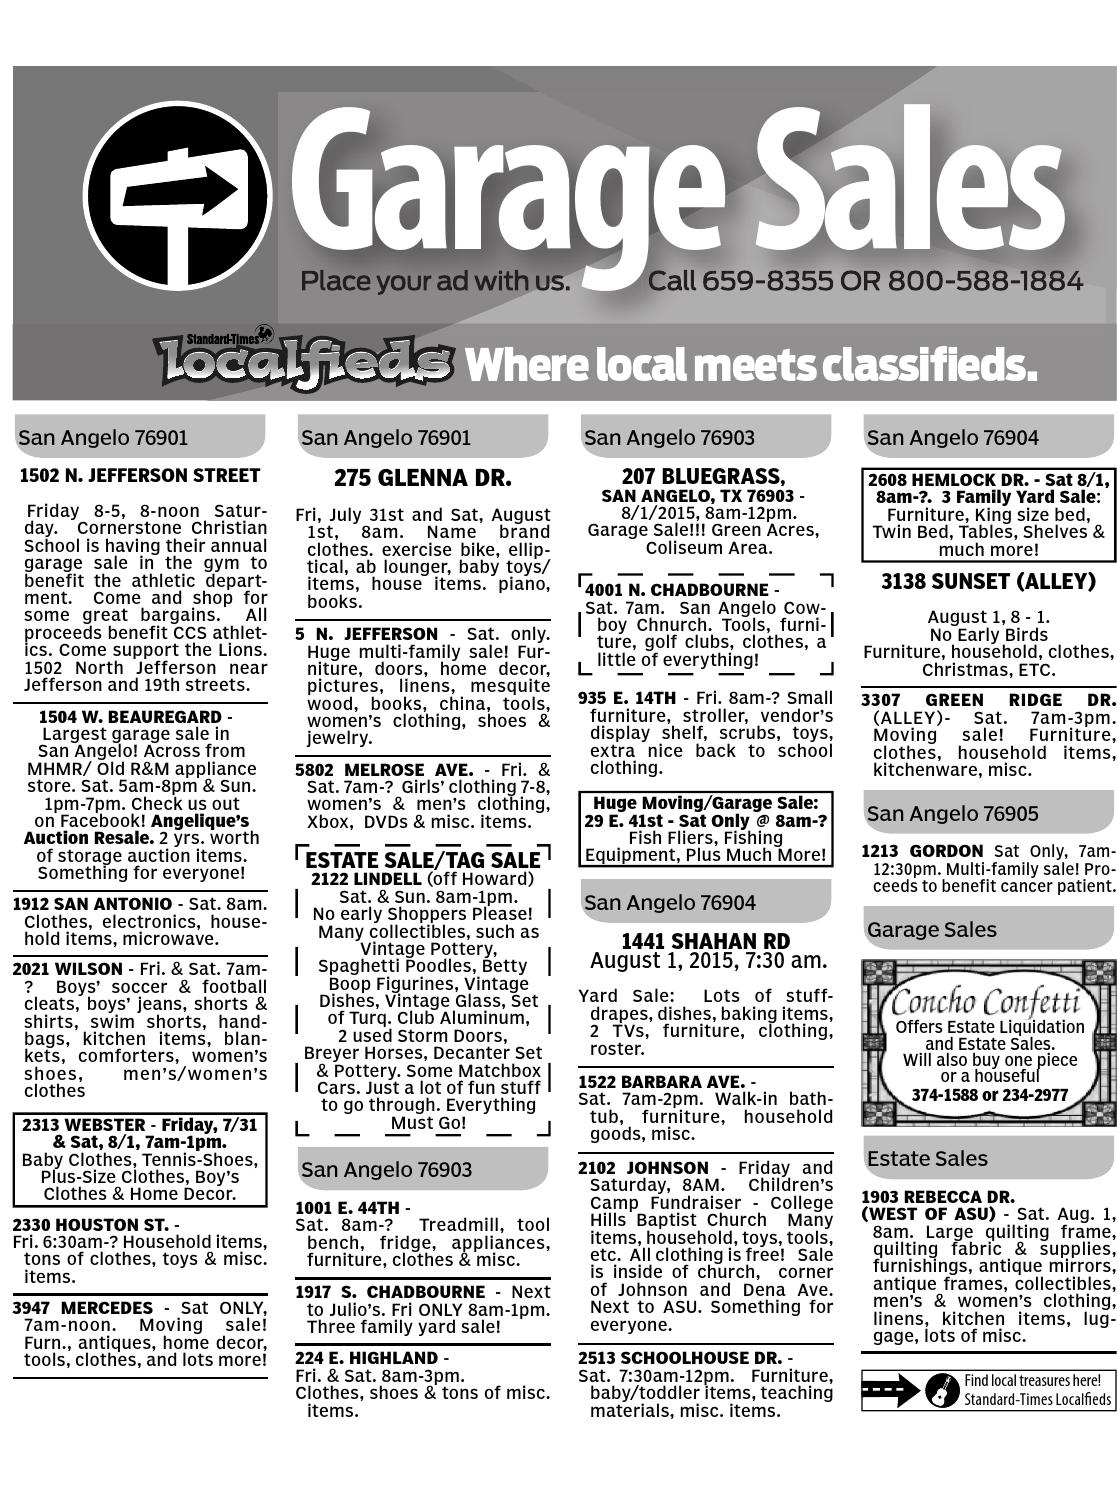 August 31 2015 Garage Sales For San Angelo Texas By Penny Sue